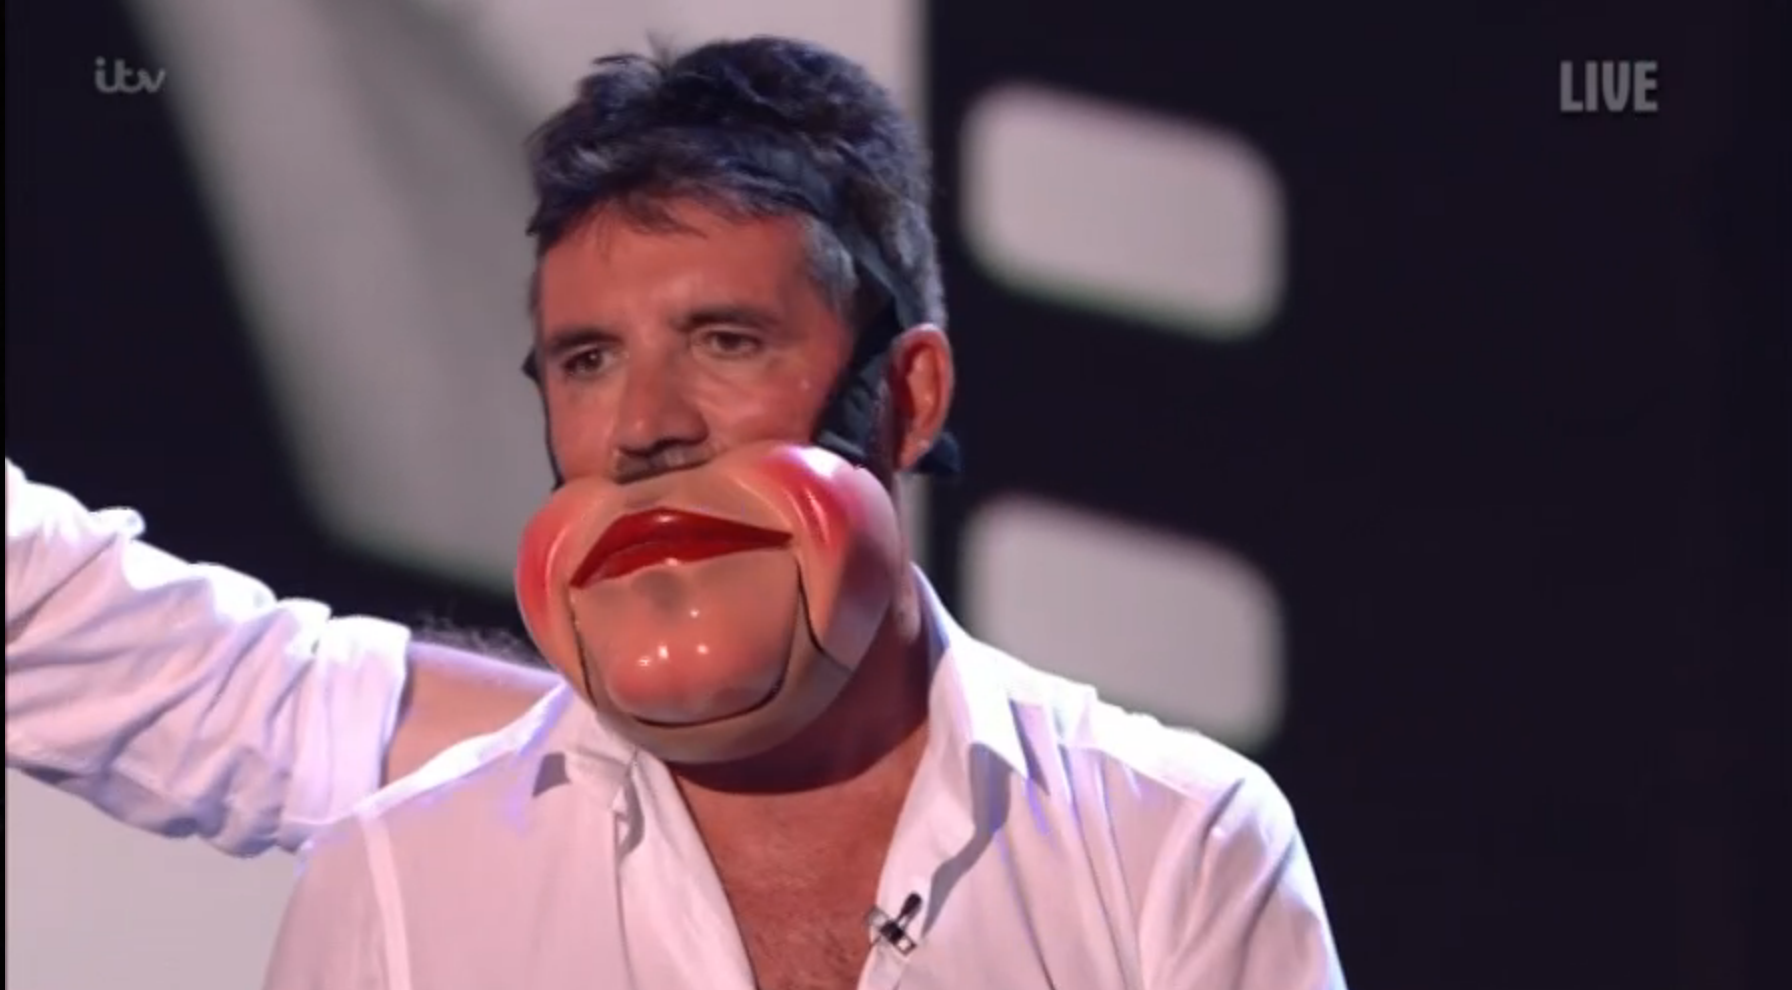 Viewers stunned as Simon Cowell storms off stage when BGT act tries to make him dance